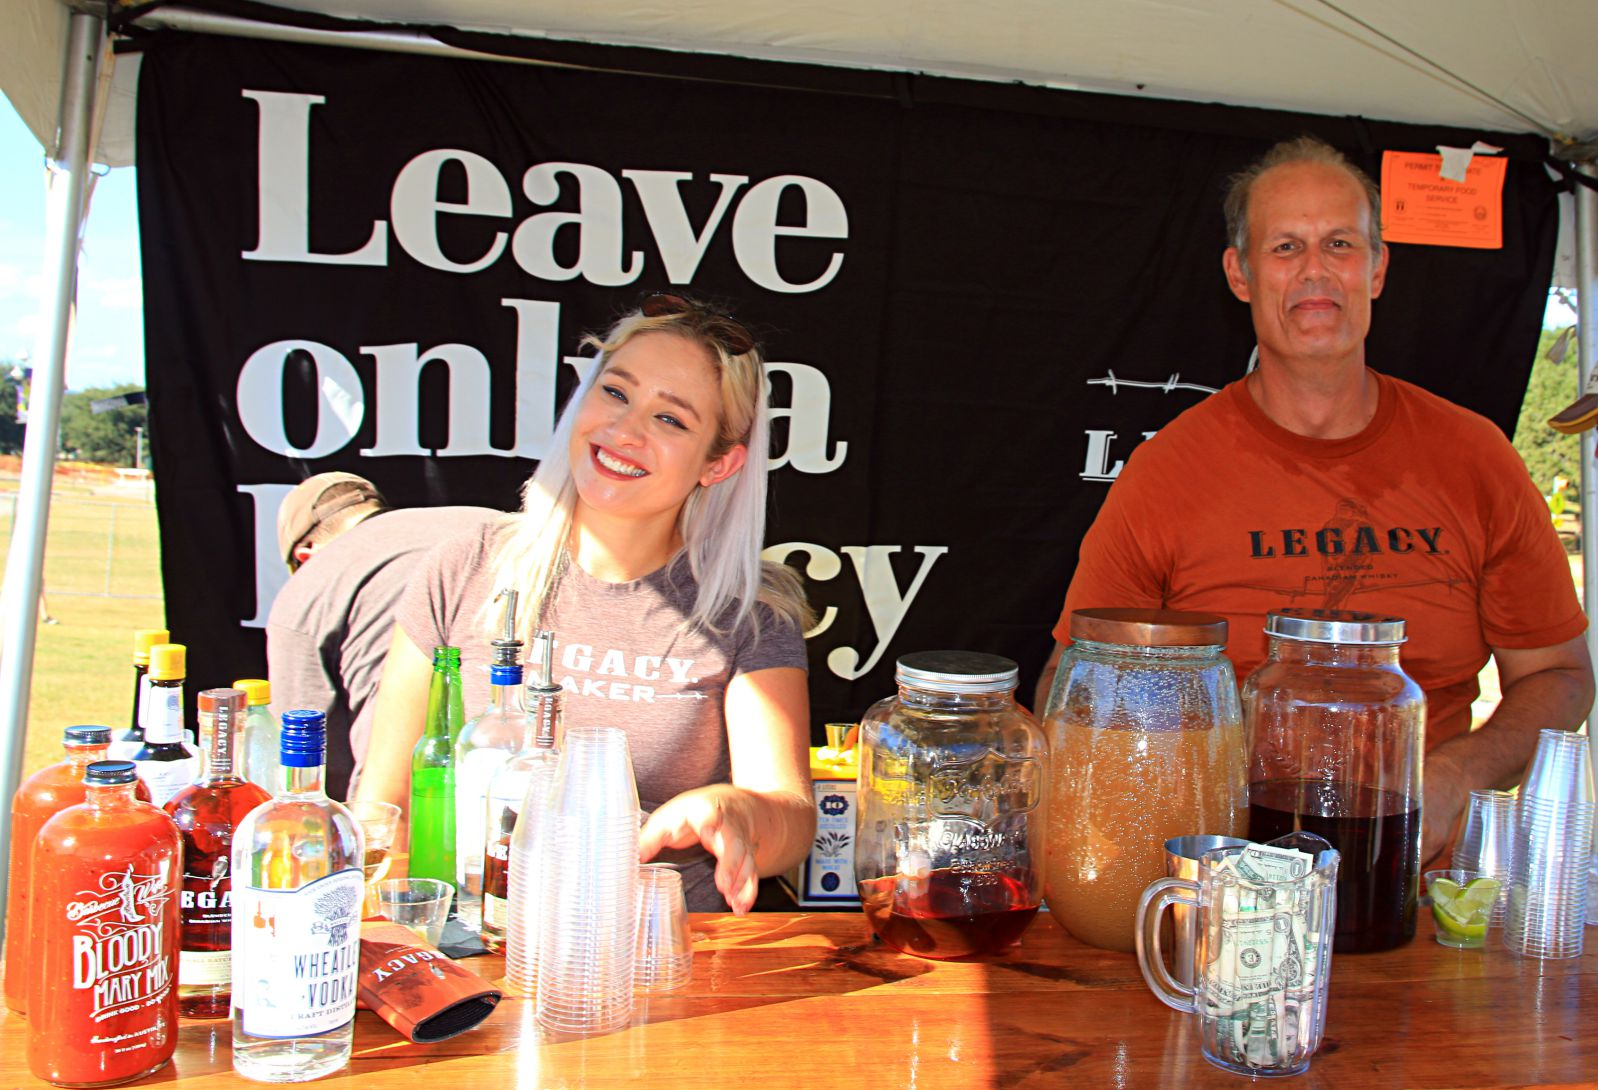 Legacy Whiskey served up samples at Texas Monthly BBQ Fest 2016